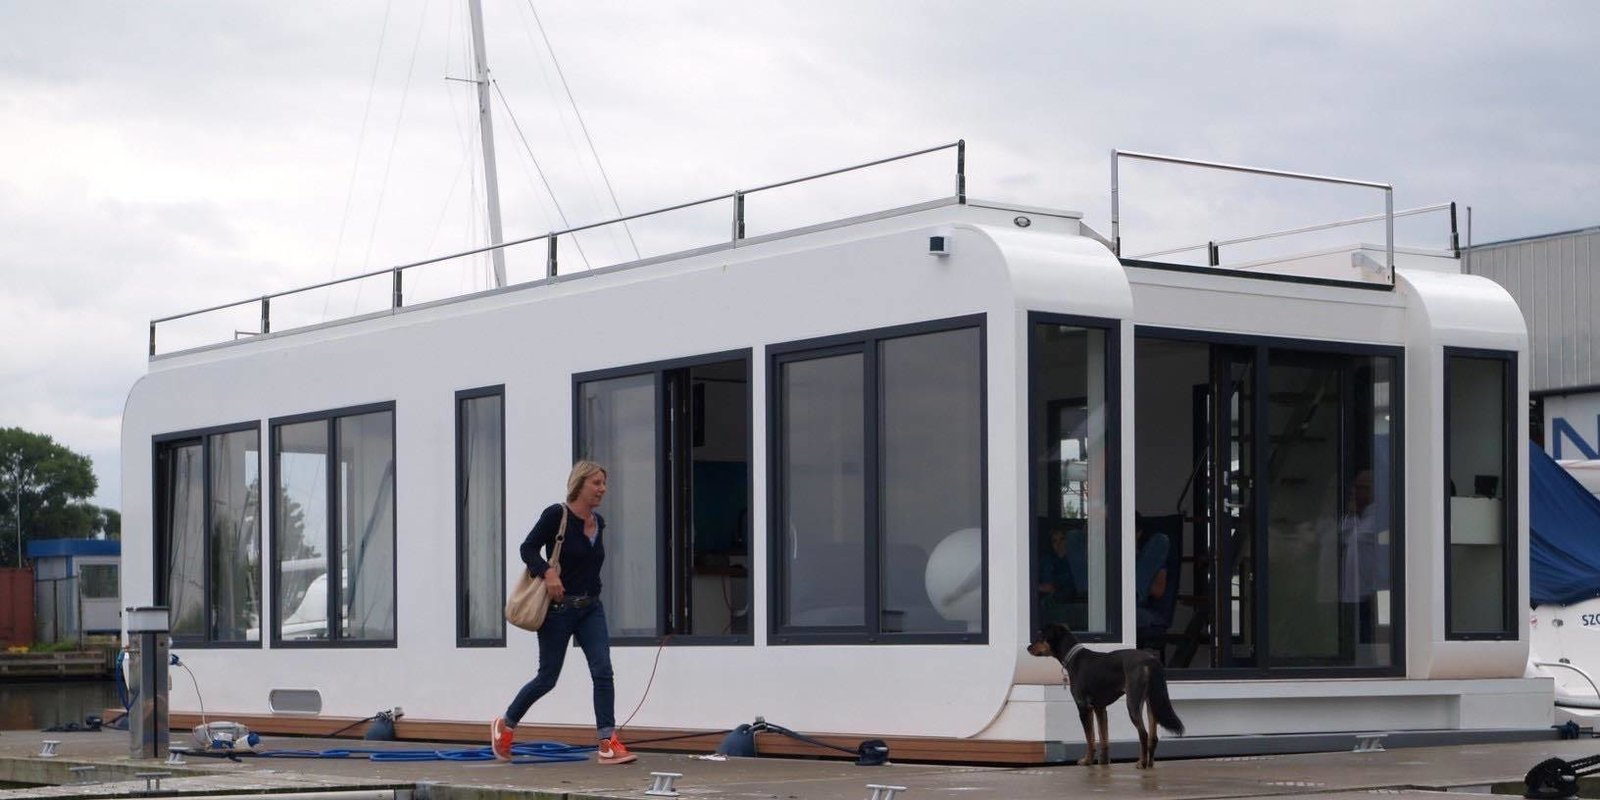 photo 6 of 7 in 6 modular houseboat and floating home. Black Bedroom Furniture Sets. Home Design Ideas